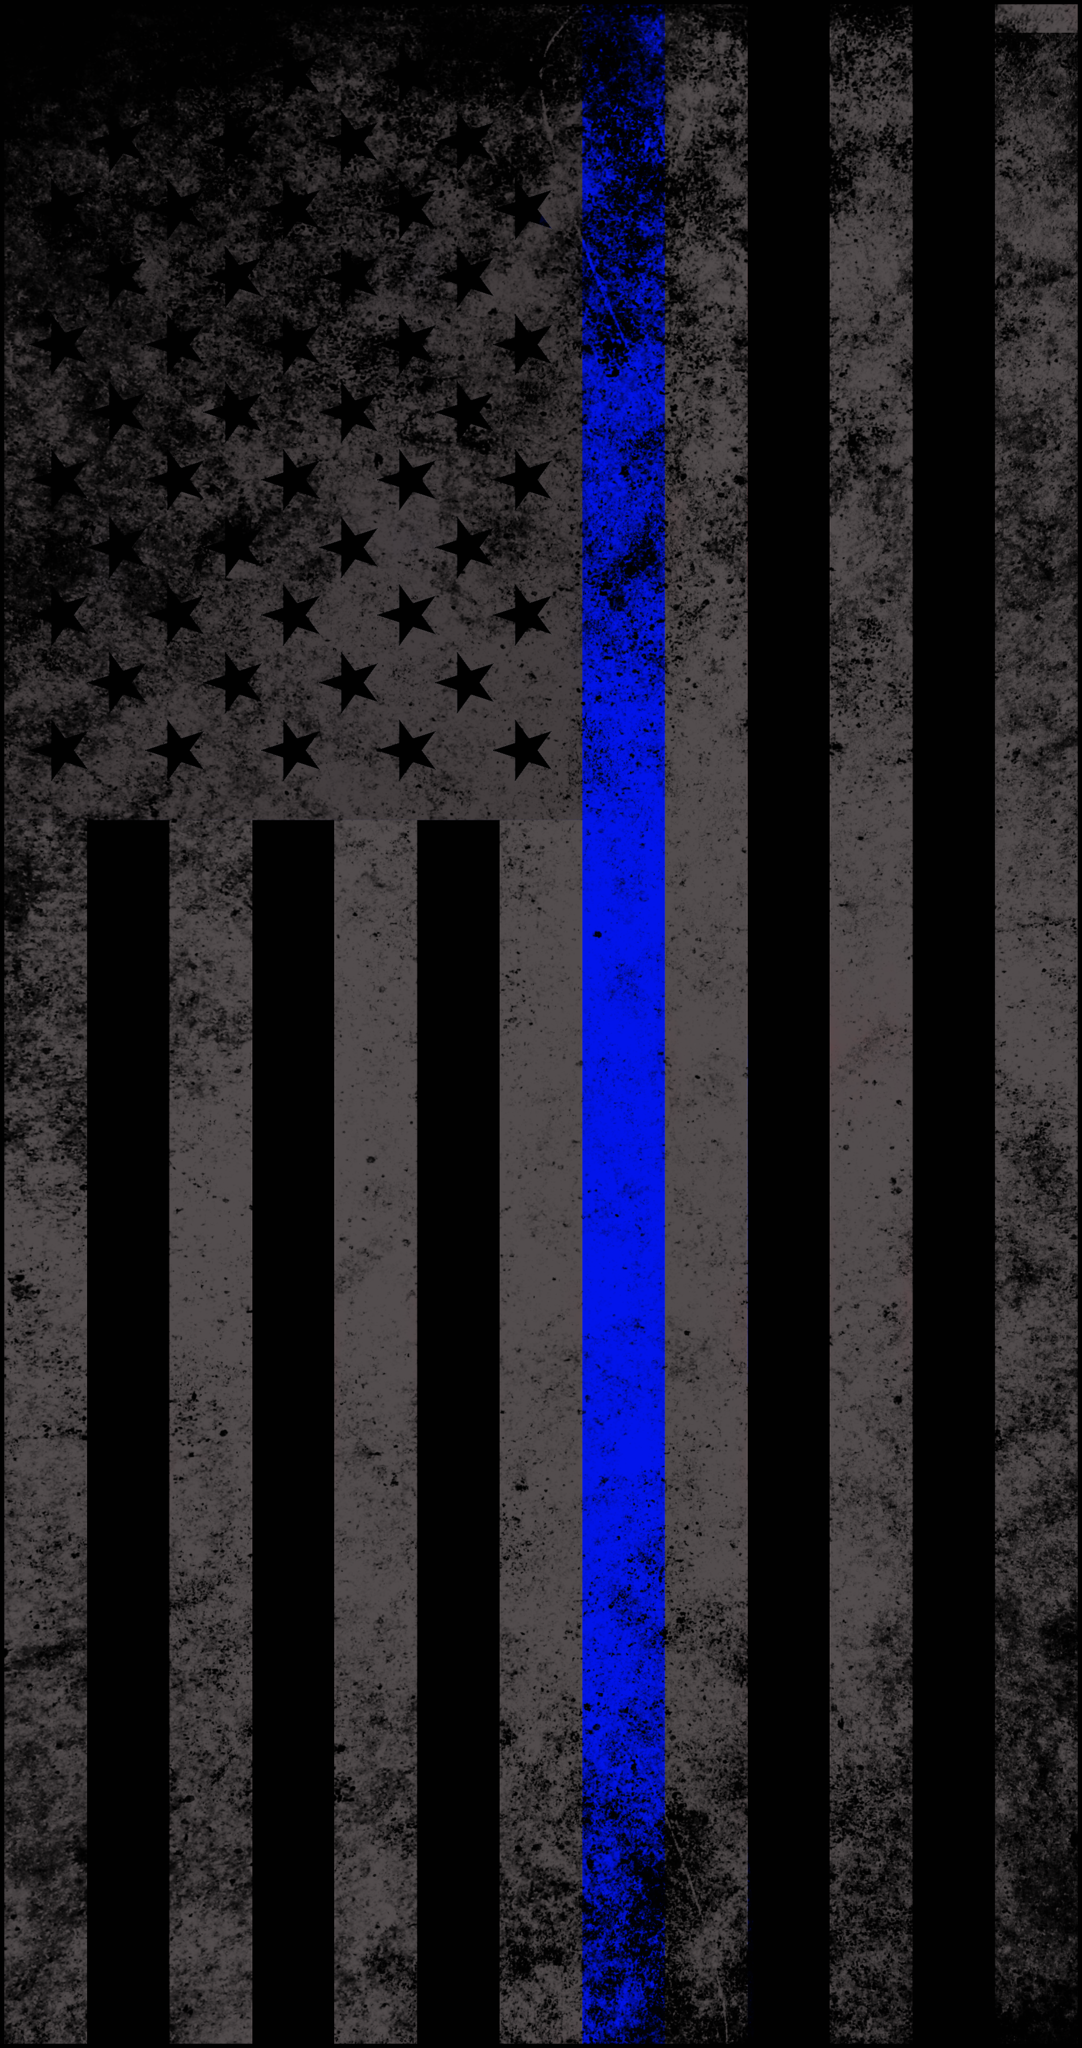 American Subdued Thin Blue Line Flag Decal Thin Blue Line Wallpaper Thin Blue Line Flag American Flag Blue Line